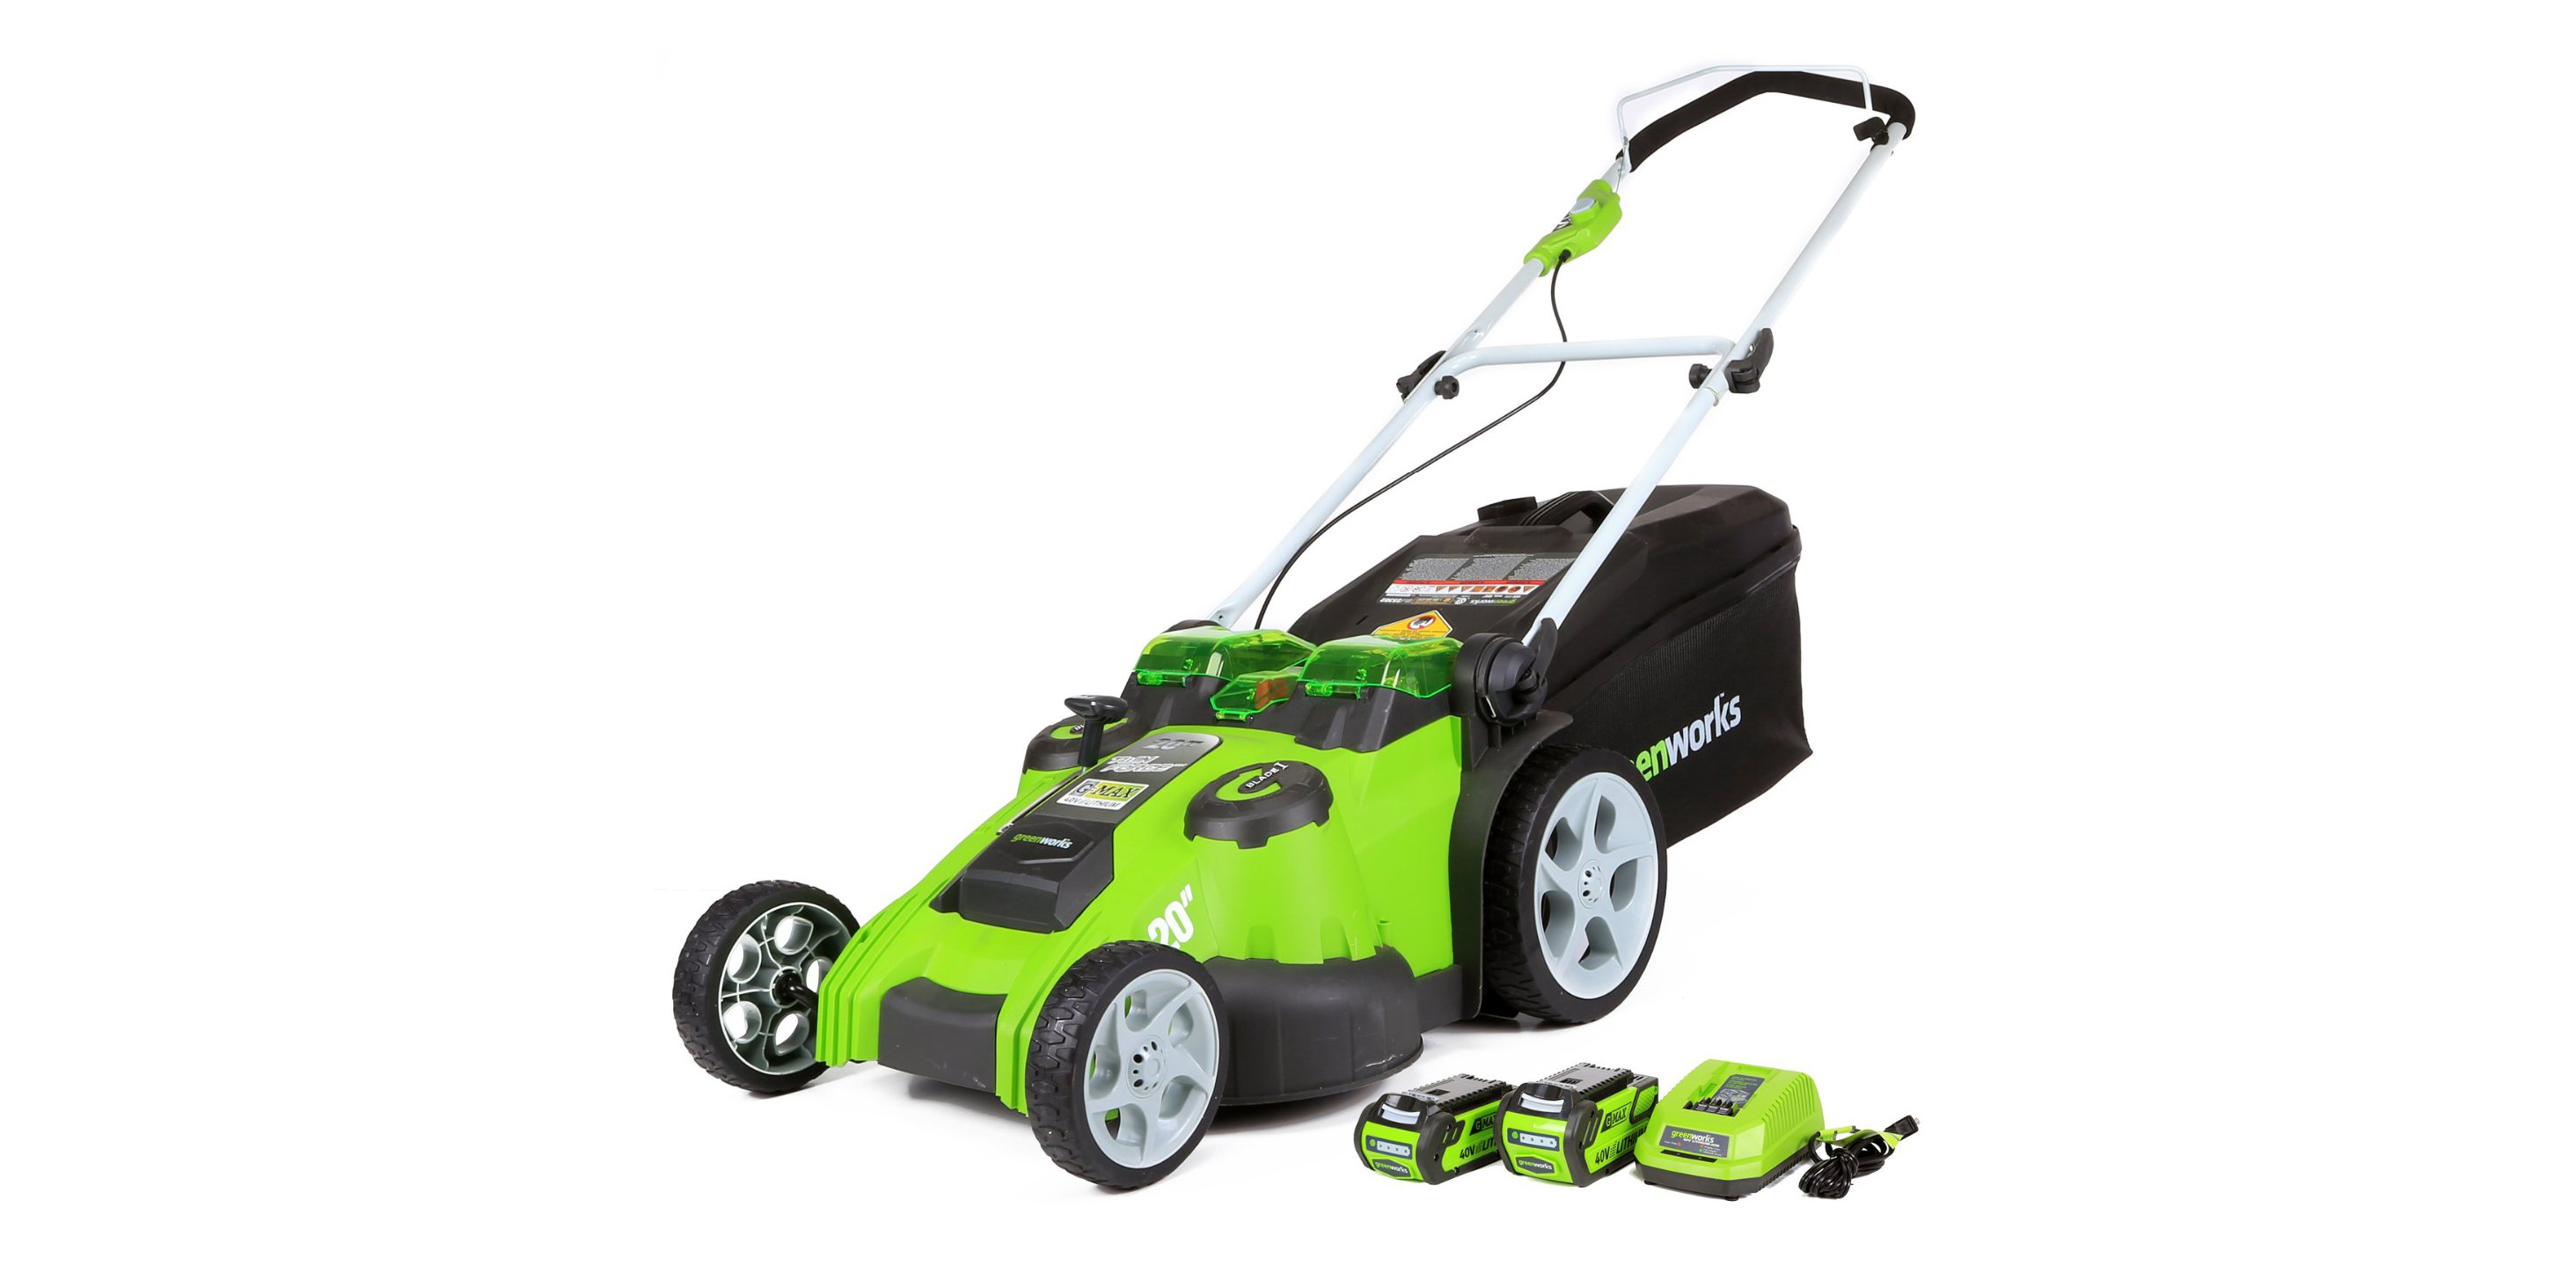 greenworks-gmax-40-lawn-mower